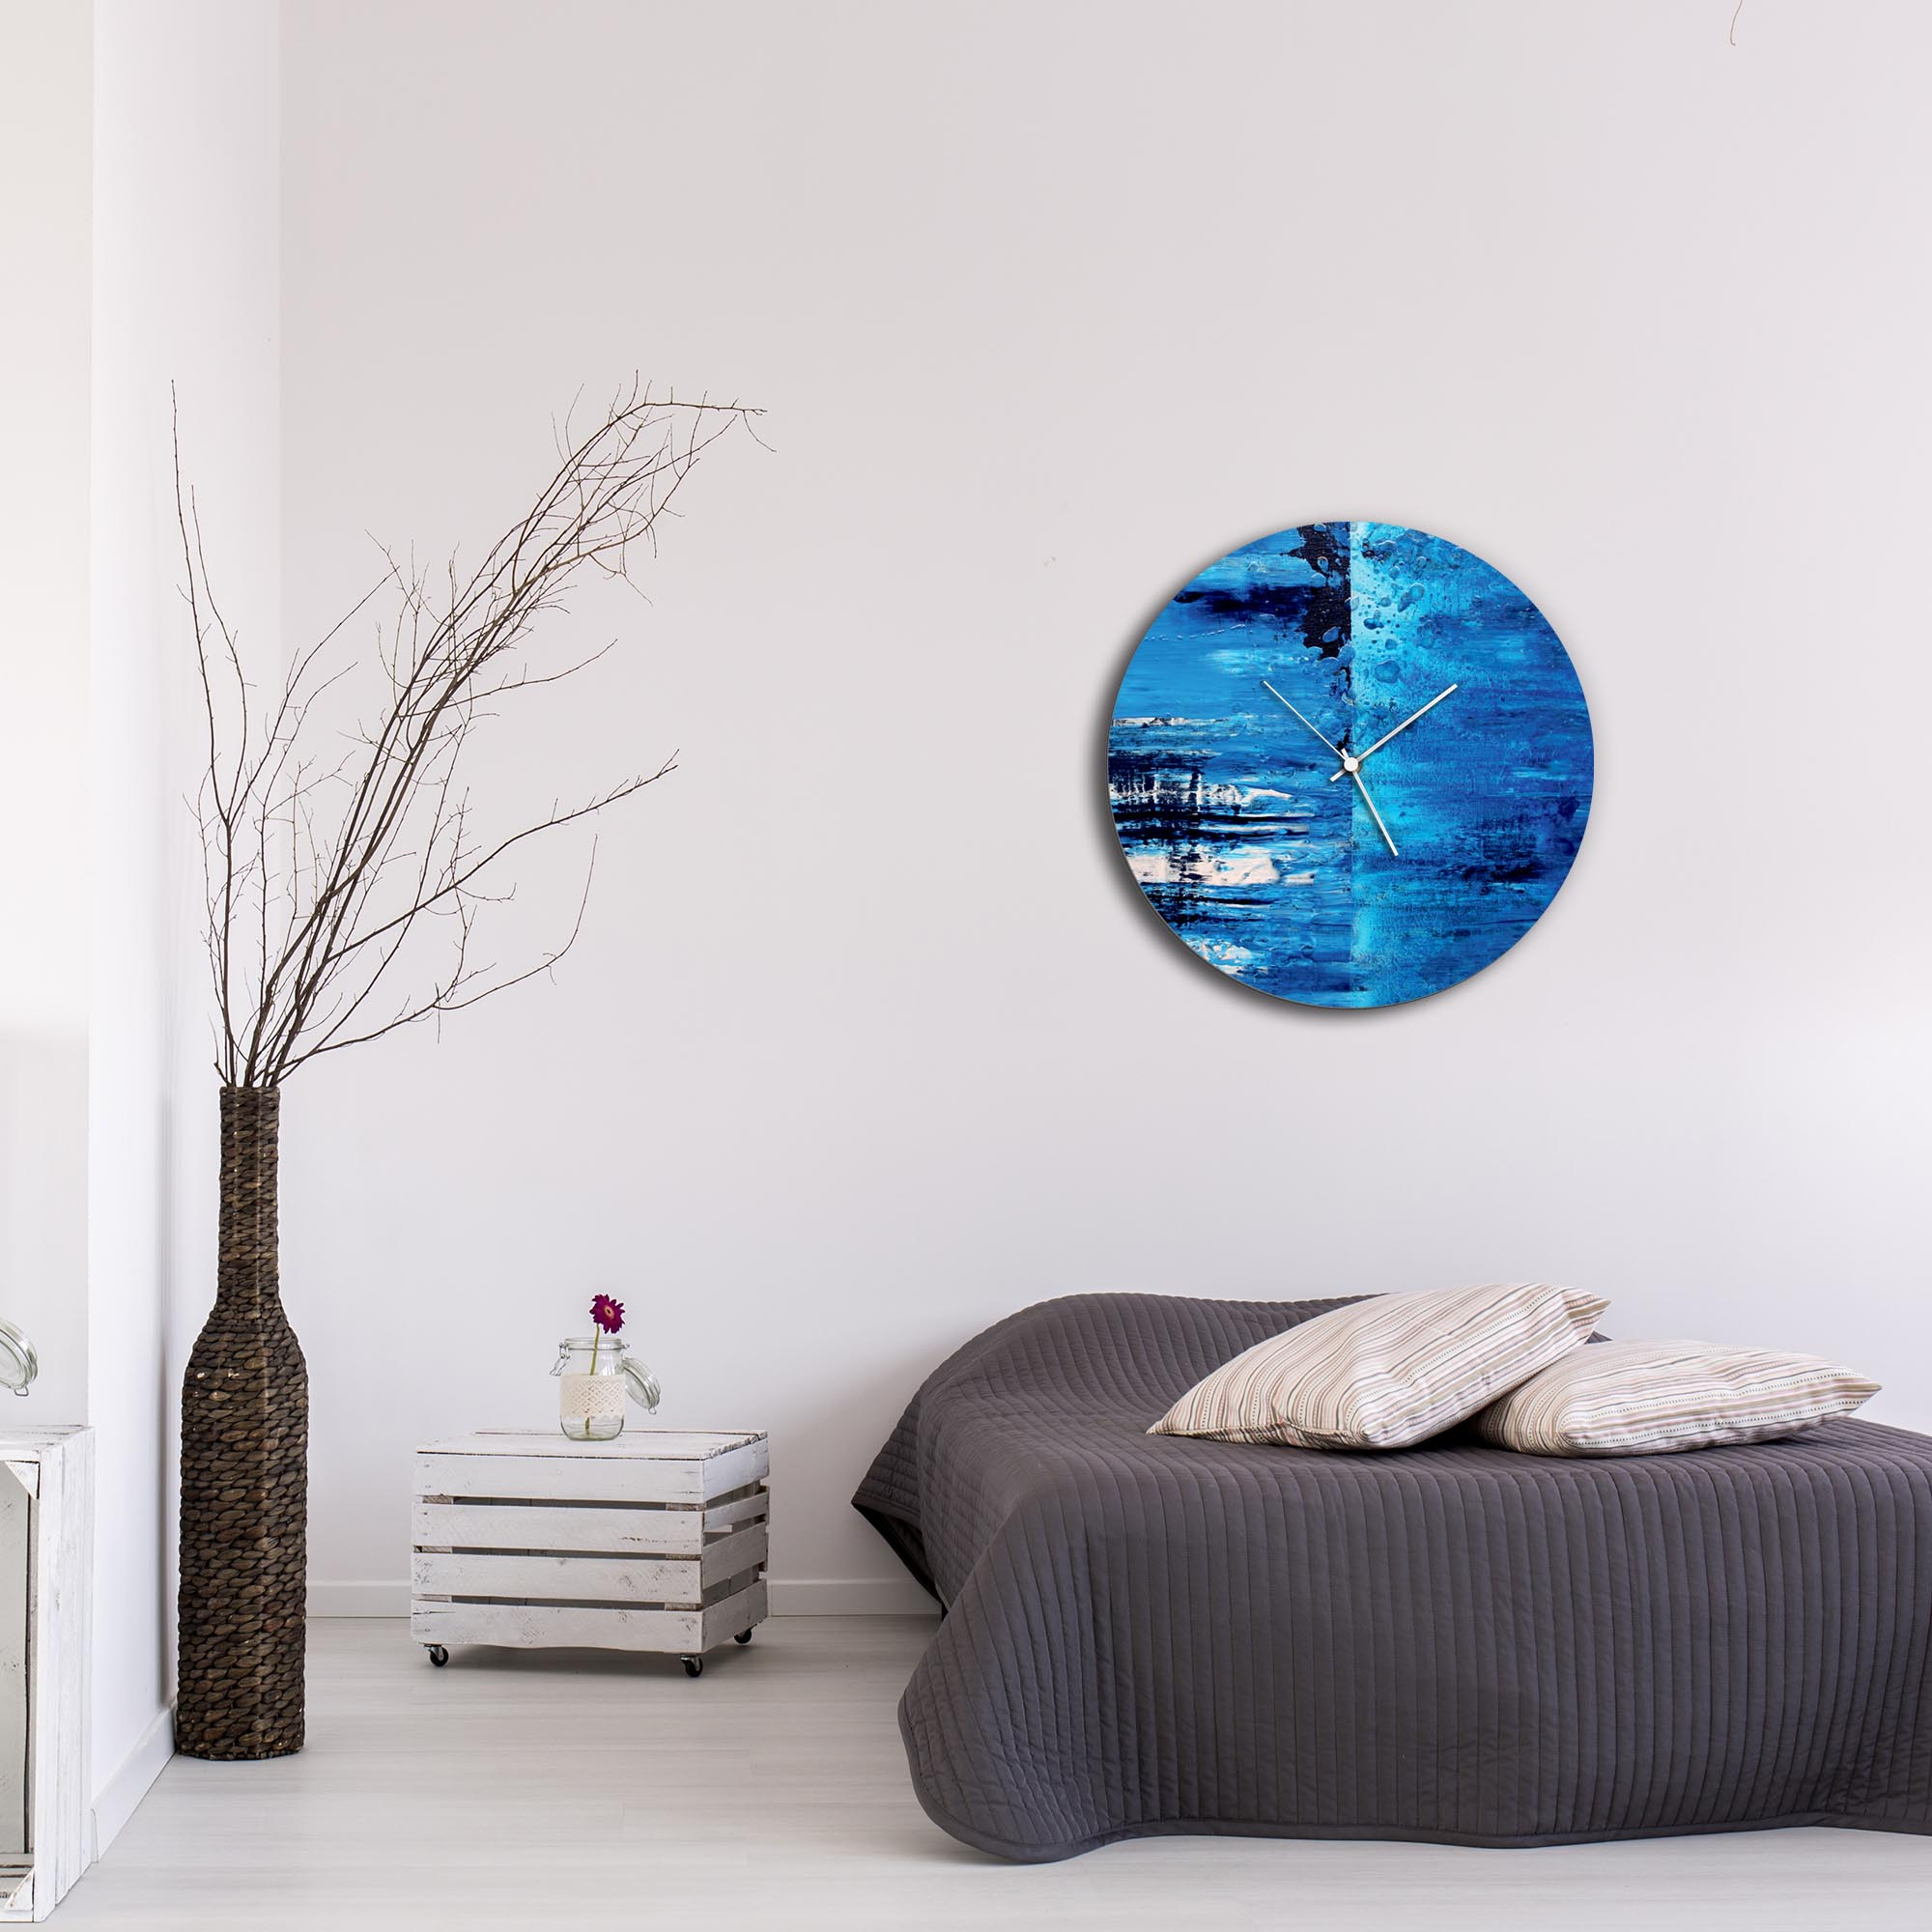 City Blue Circle Clock Large by Mendo Vasilevski - Urban Abstract Home Decor - Lifestyle View